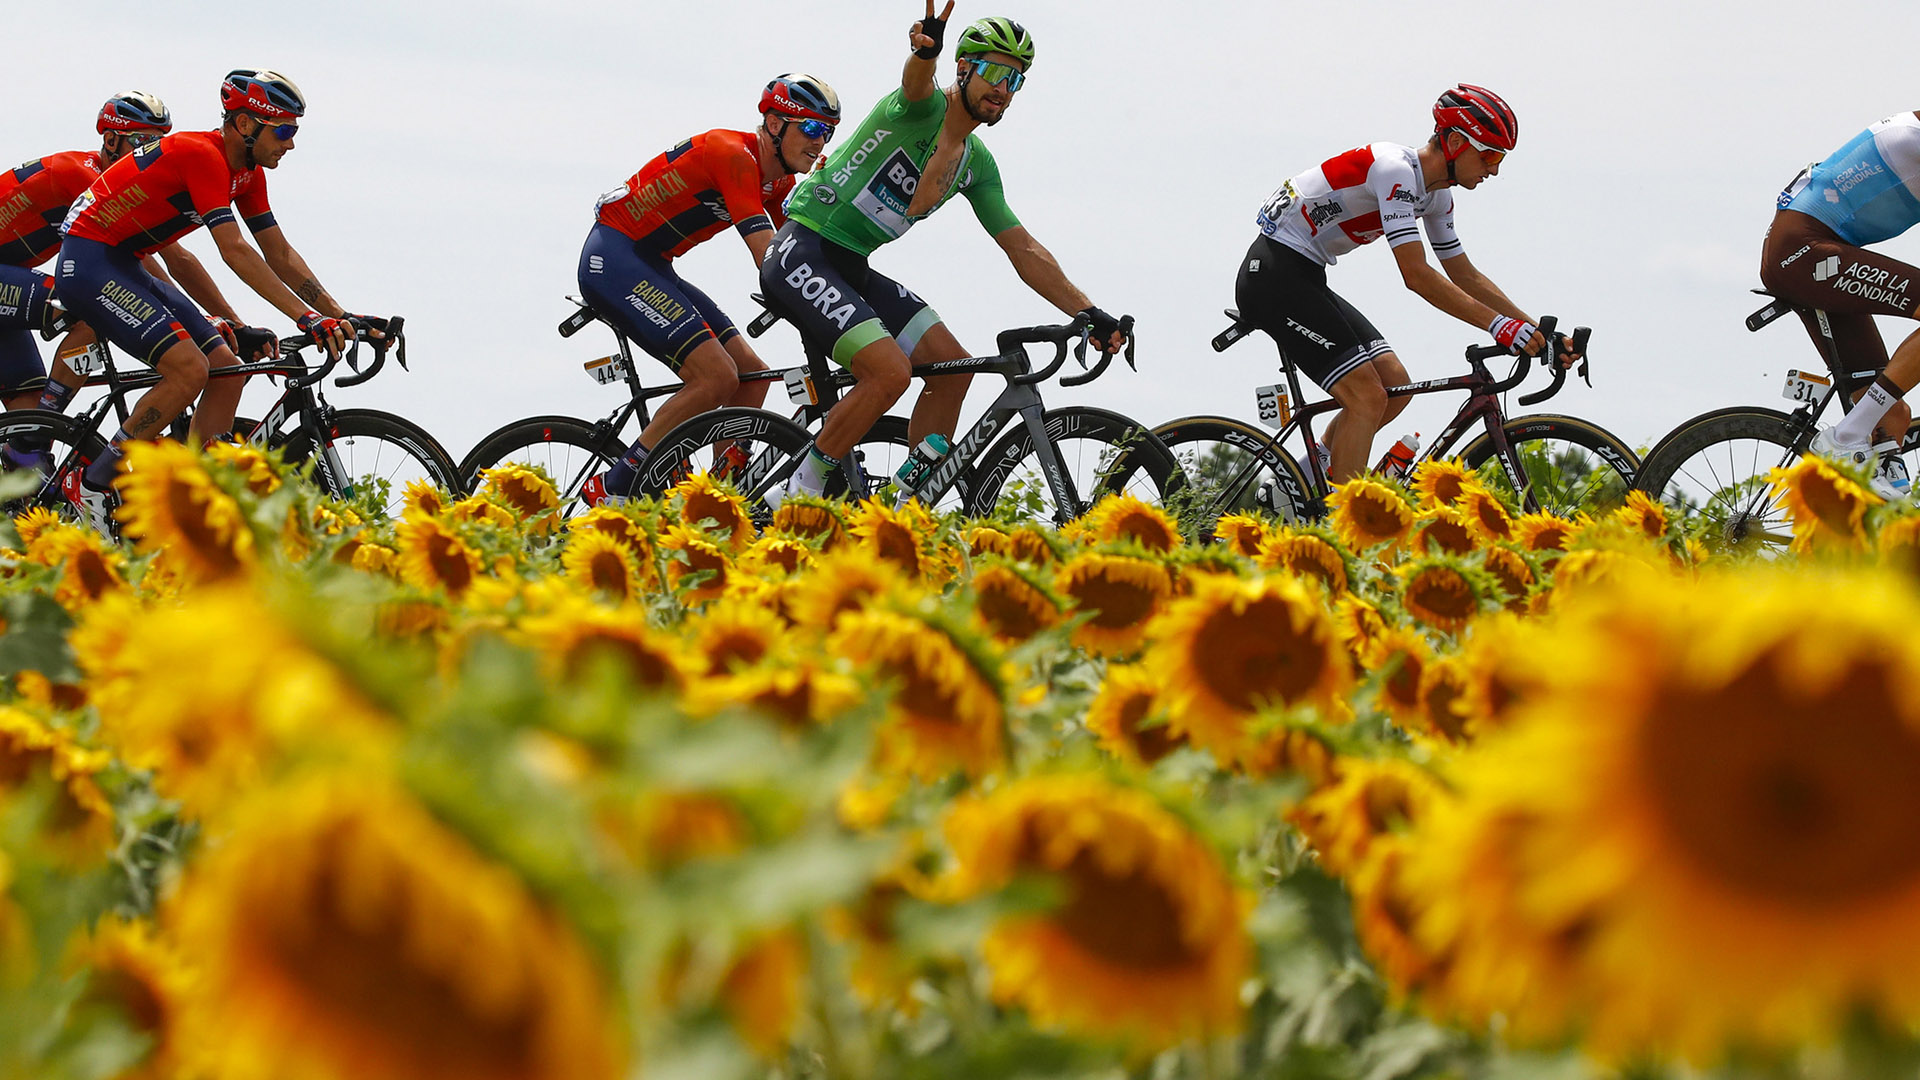 TdF_bettiniphoto_Sagan_Slider_4.jpg